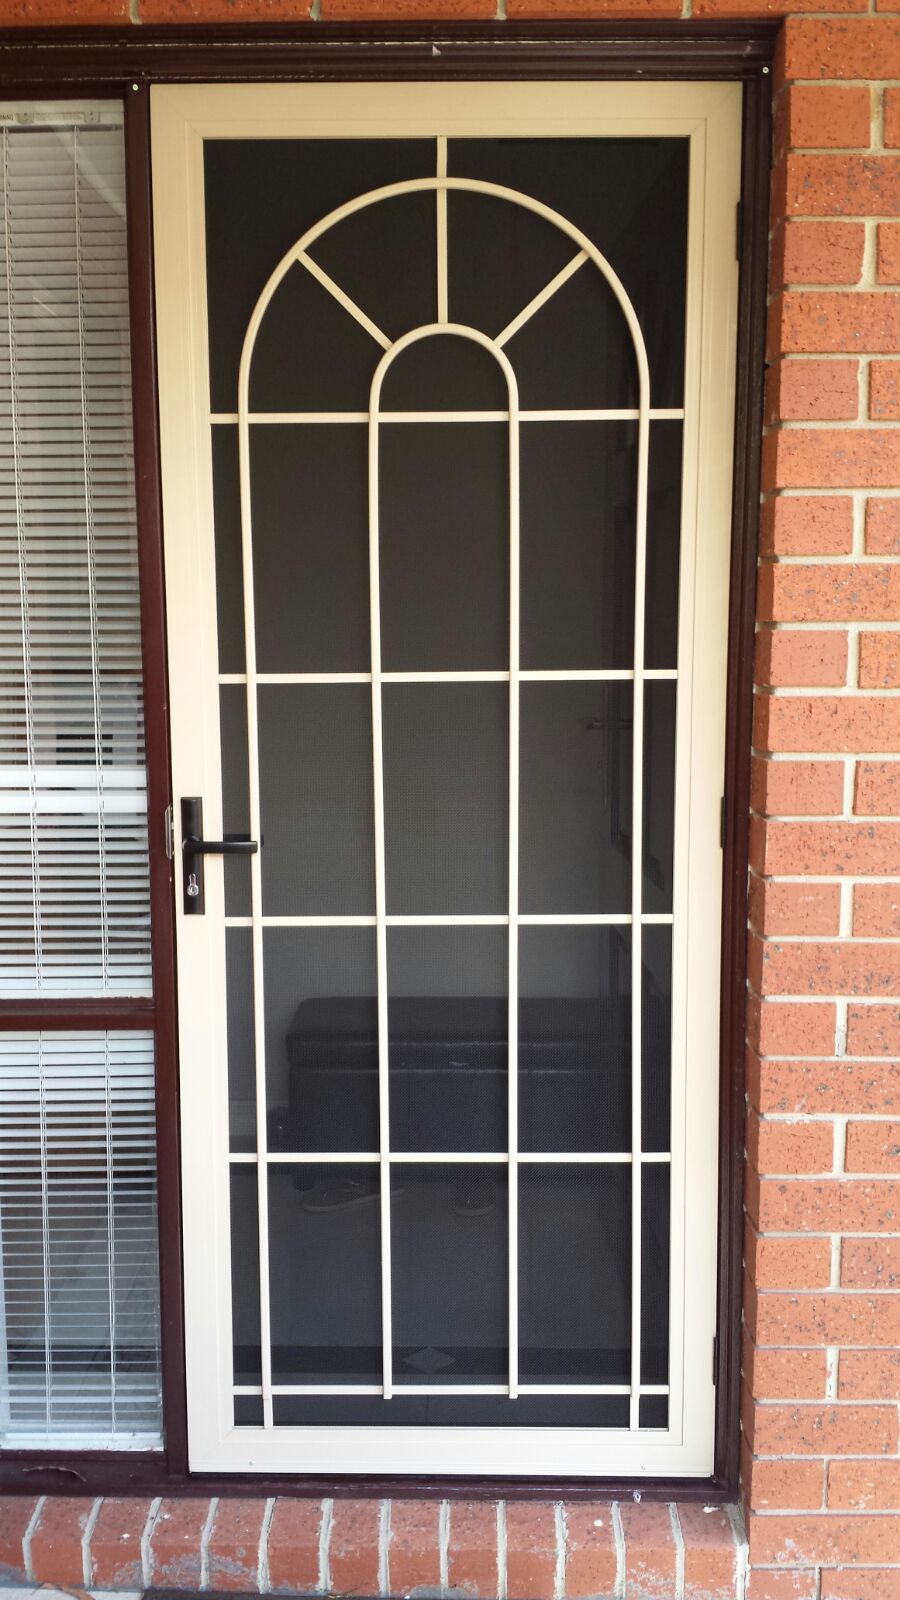 Aluminium Frame Security Door With Steel Grille And Stainless Steel Mesh Installed In Mordialloc Puertas De Acero